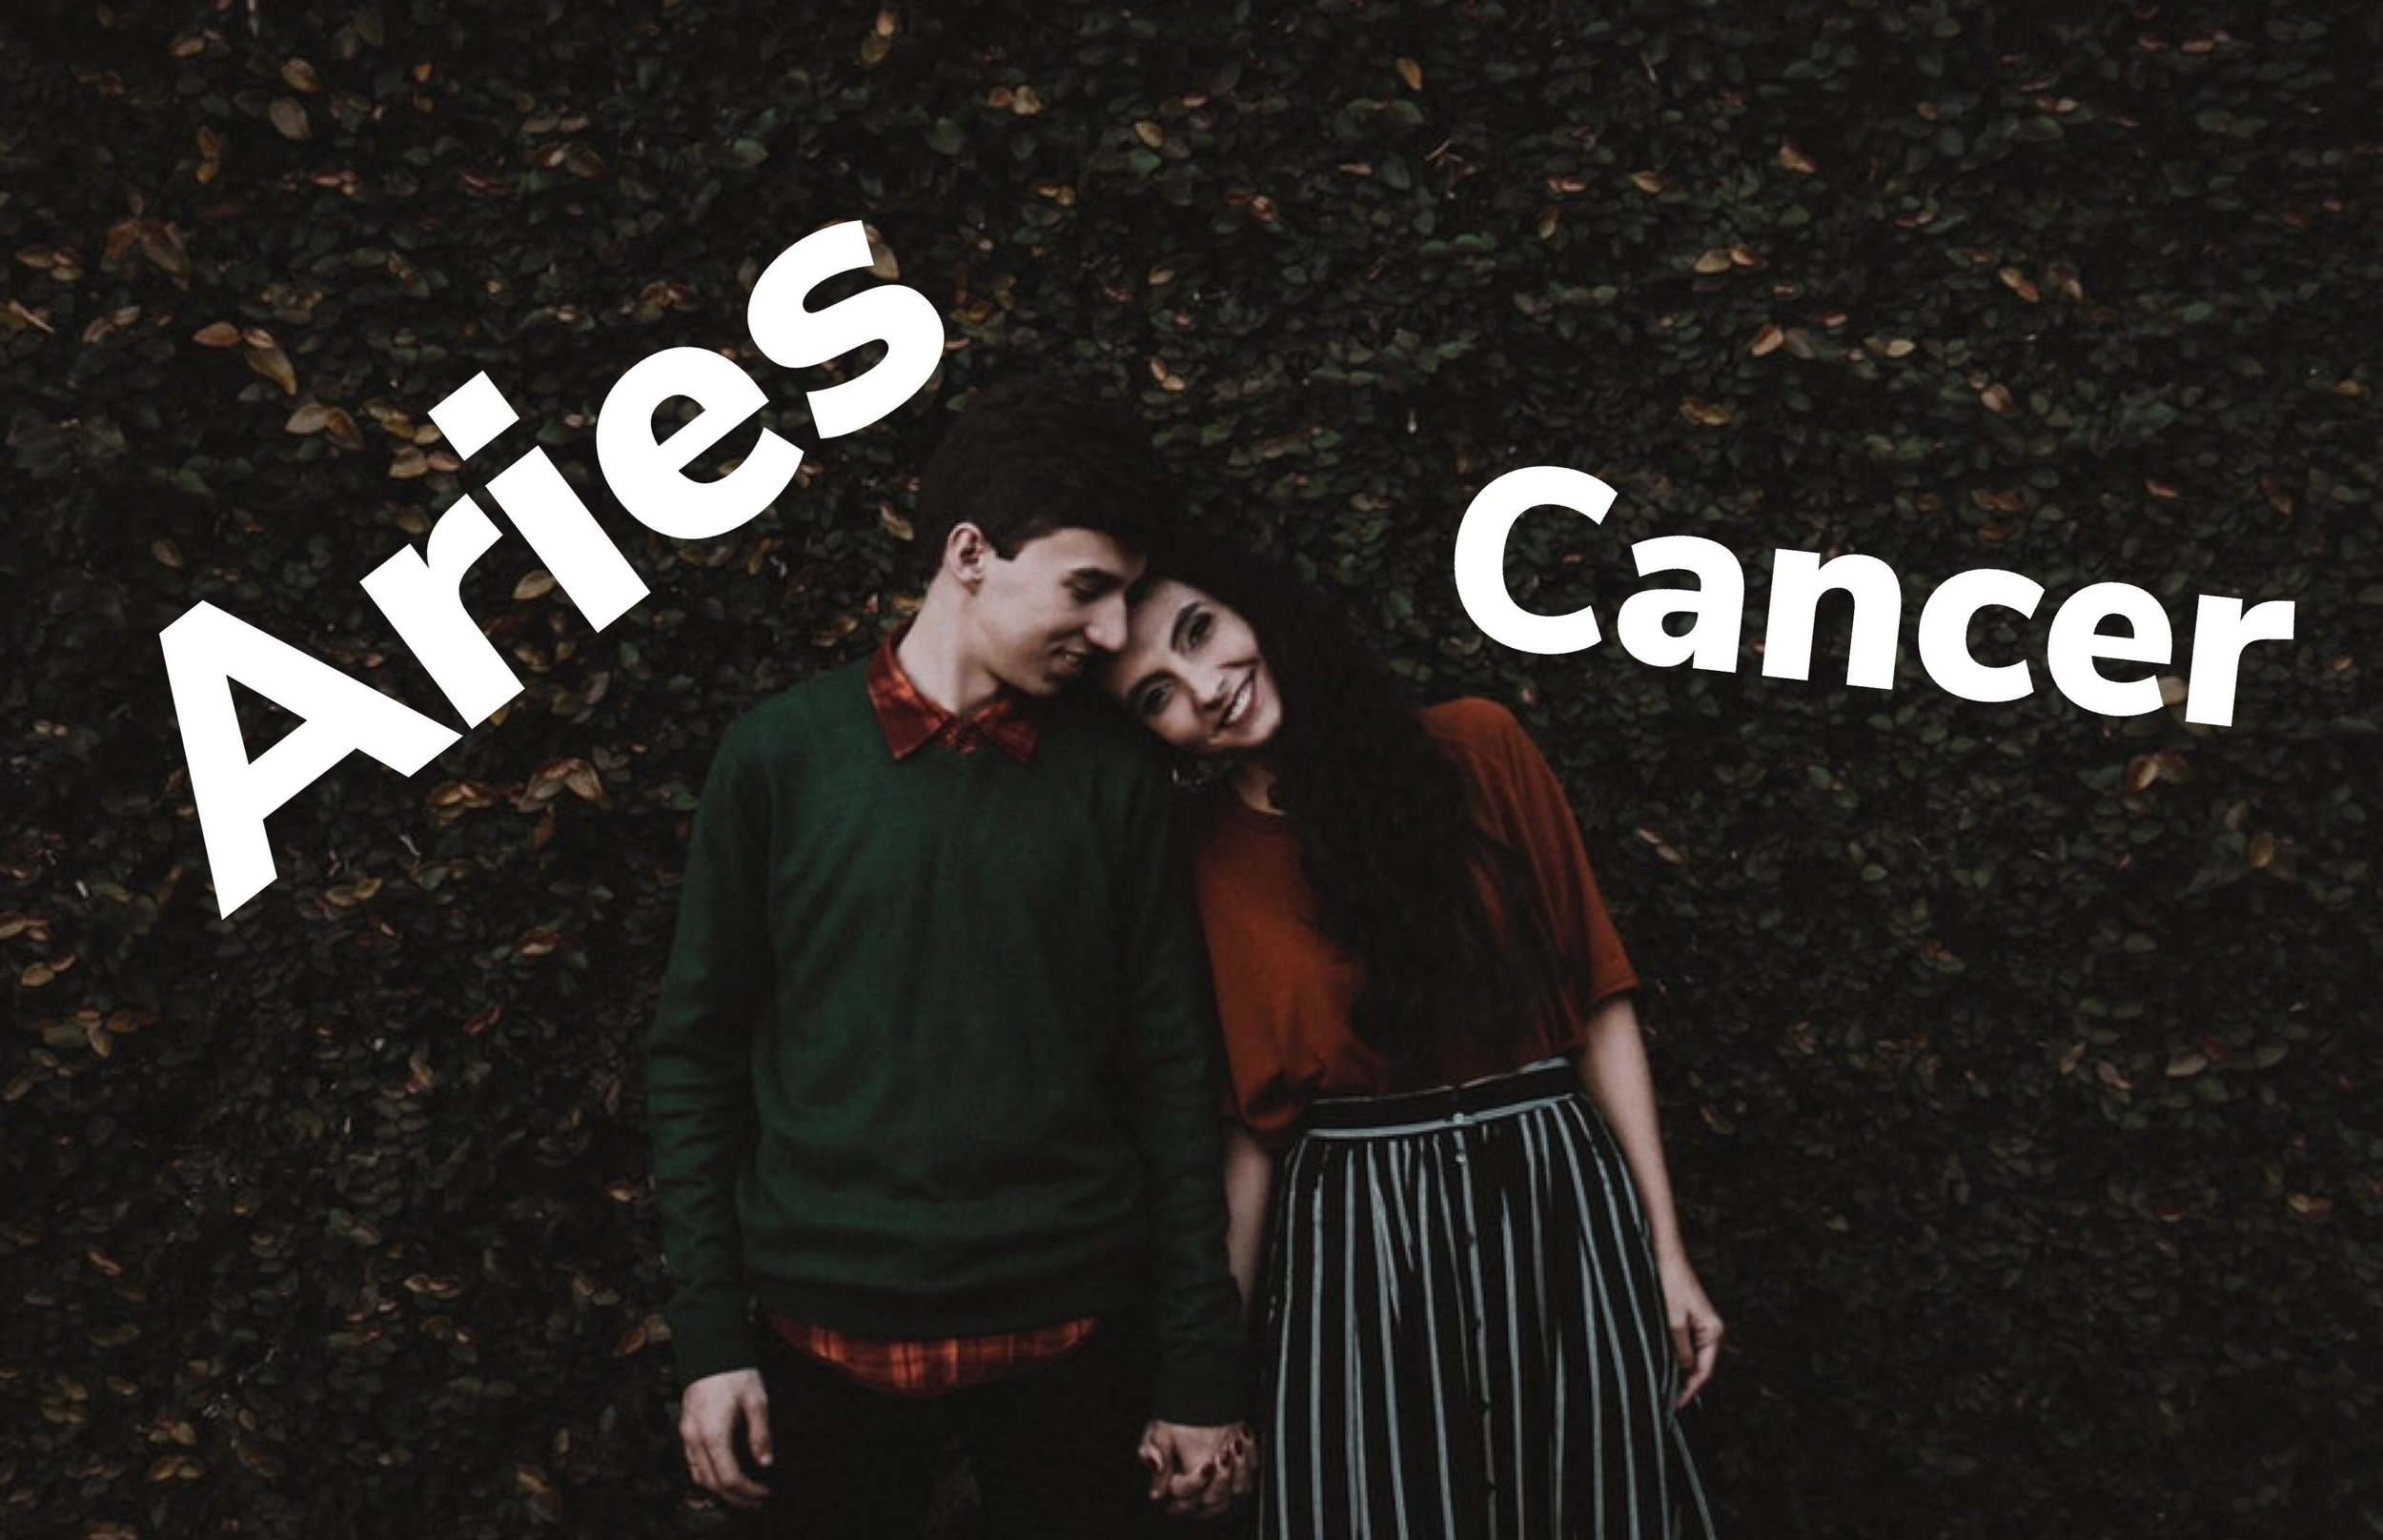 Cancer and Aries relationship compatibility leoaqualibravibes astrology online relationship story